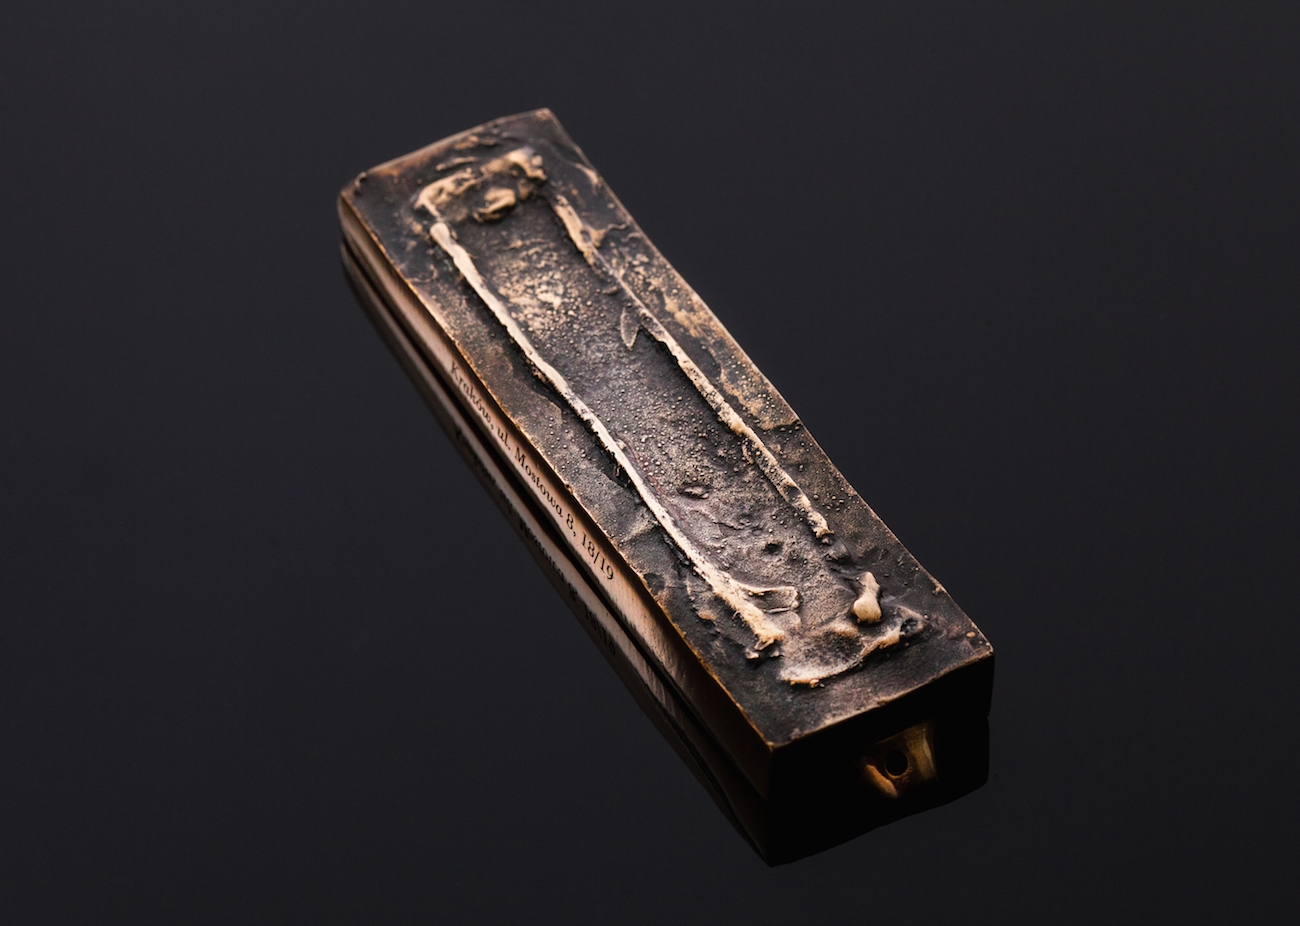 One of the bronze mezuzahs made by Mi Polin from a trace of an old Polish mezuzah. (Mi Polin)